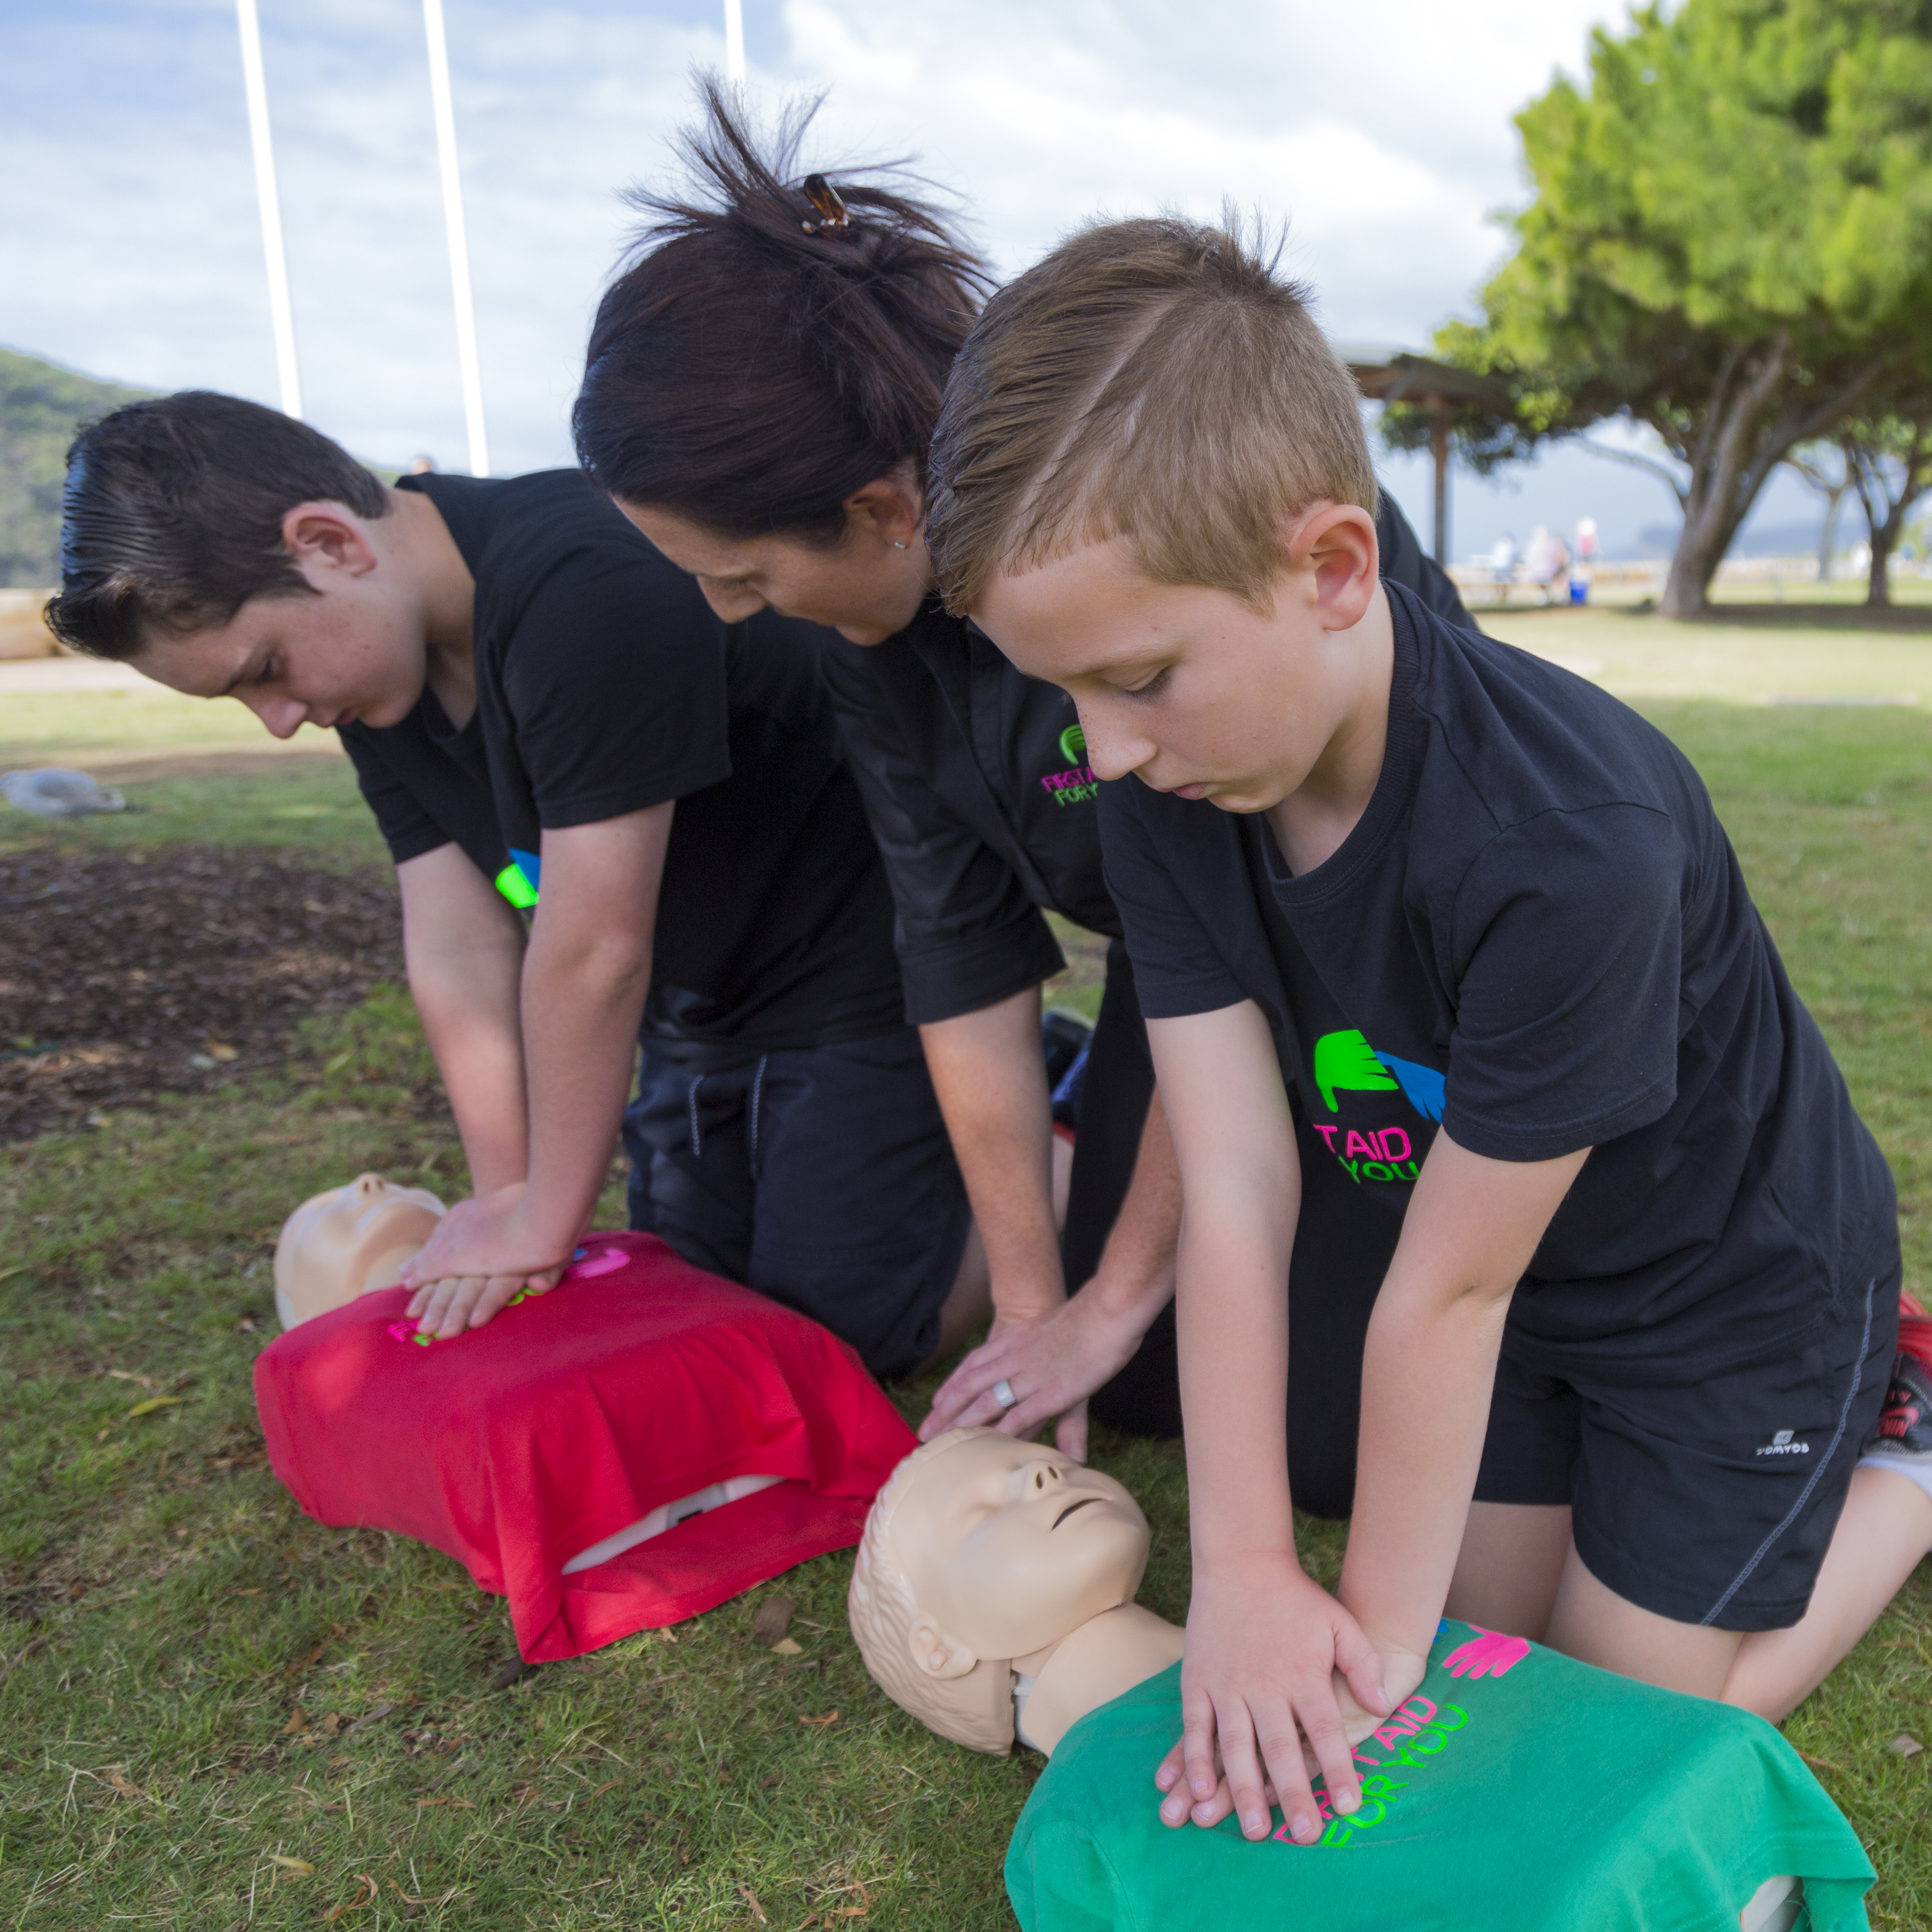 Mary Dawes of First Aid For You teaching 2 boys CPR